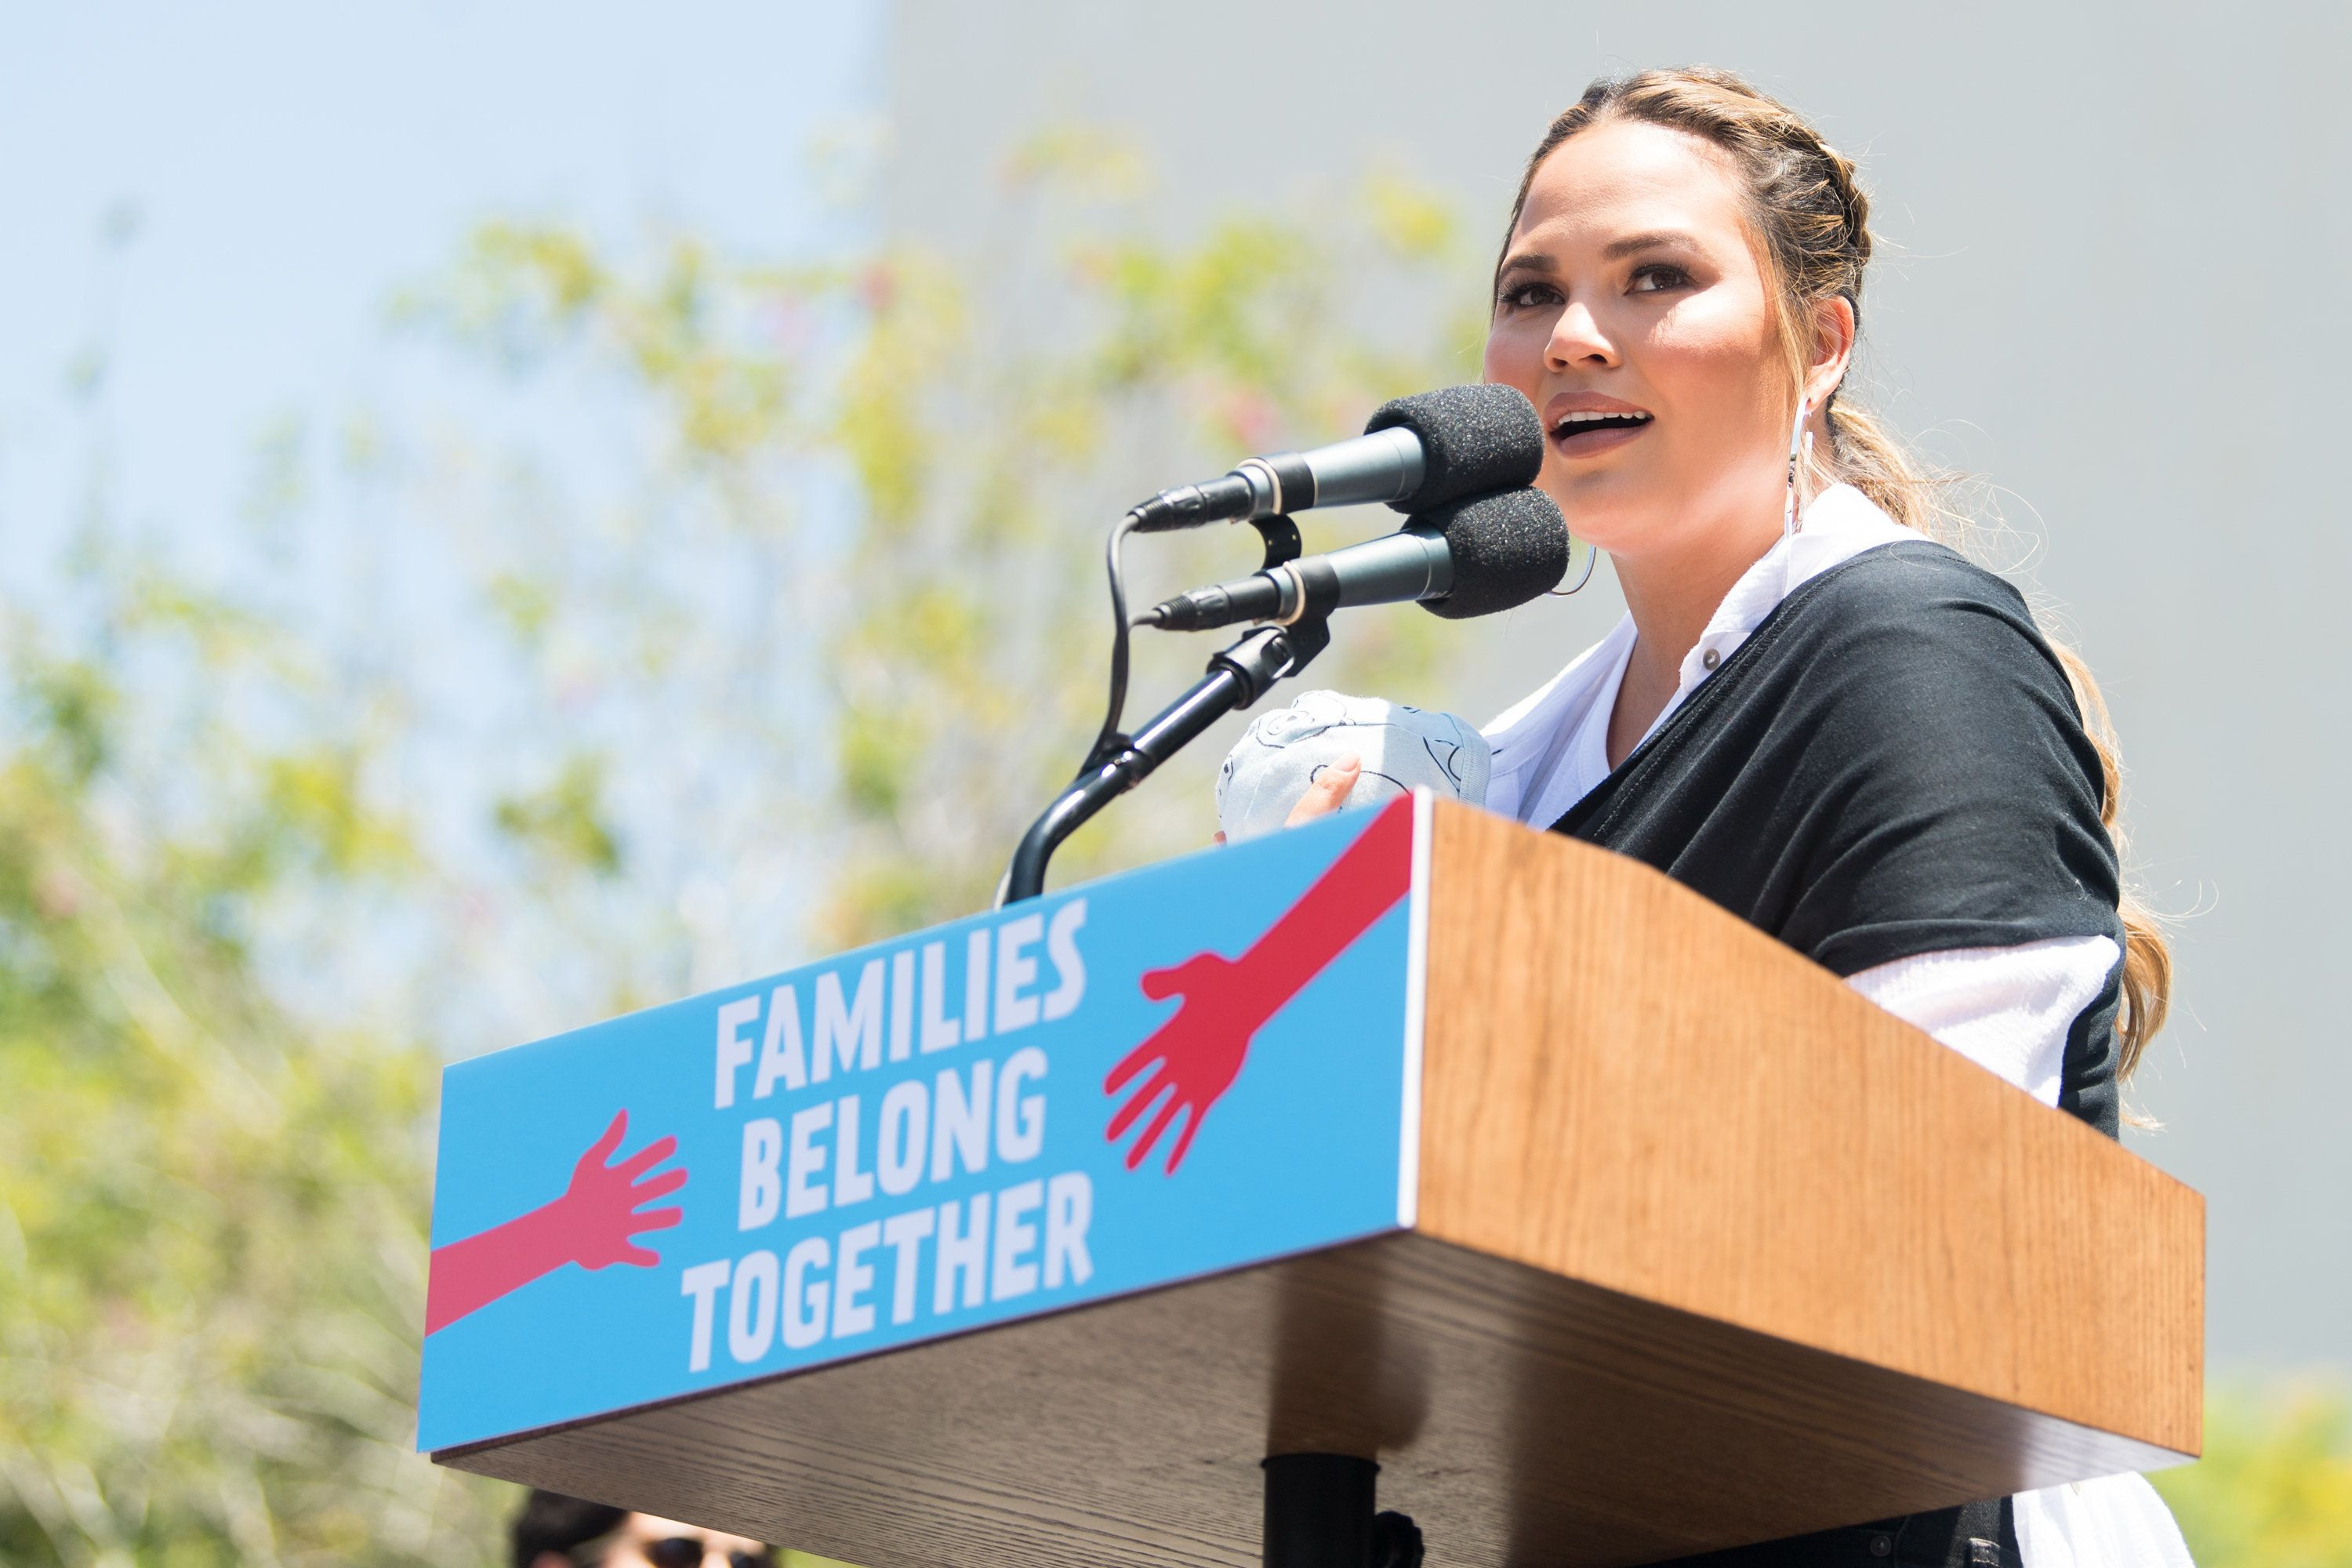 LOS ANGELES, CA - JUNE 30:  Chrissy Teigen speaks onstage at 'Families Belong Together  - Freedom for Immigrants March Los Angeles' at Los Angeles City Hall on June 30, 2018 in Los Angeles, California.  (Photo by Emma McIntyre/Getty Images for Families Belong Together LA)